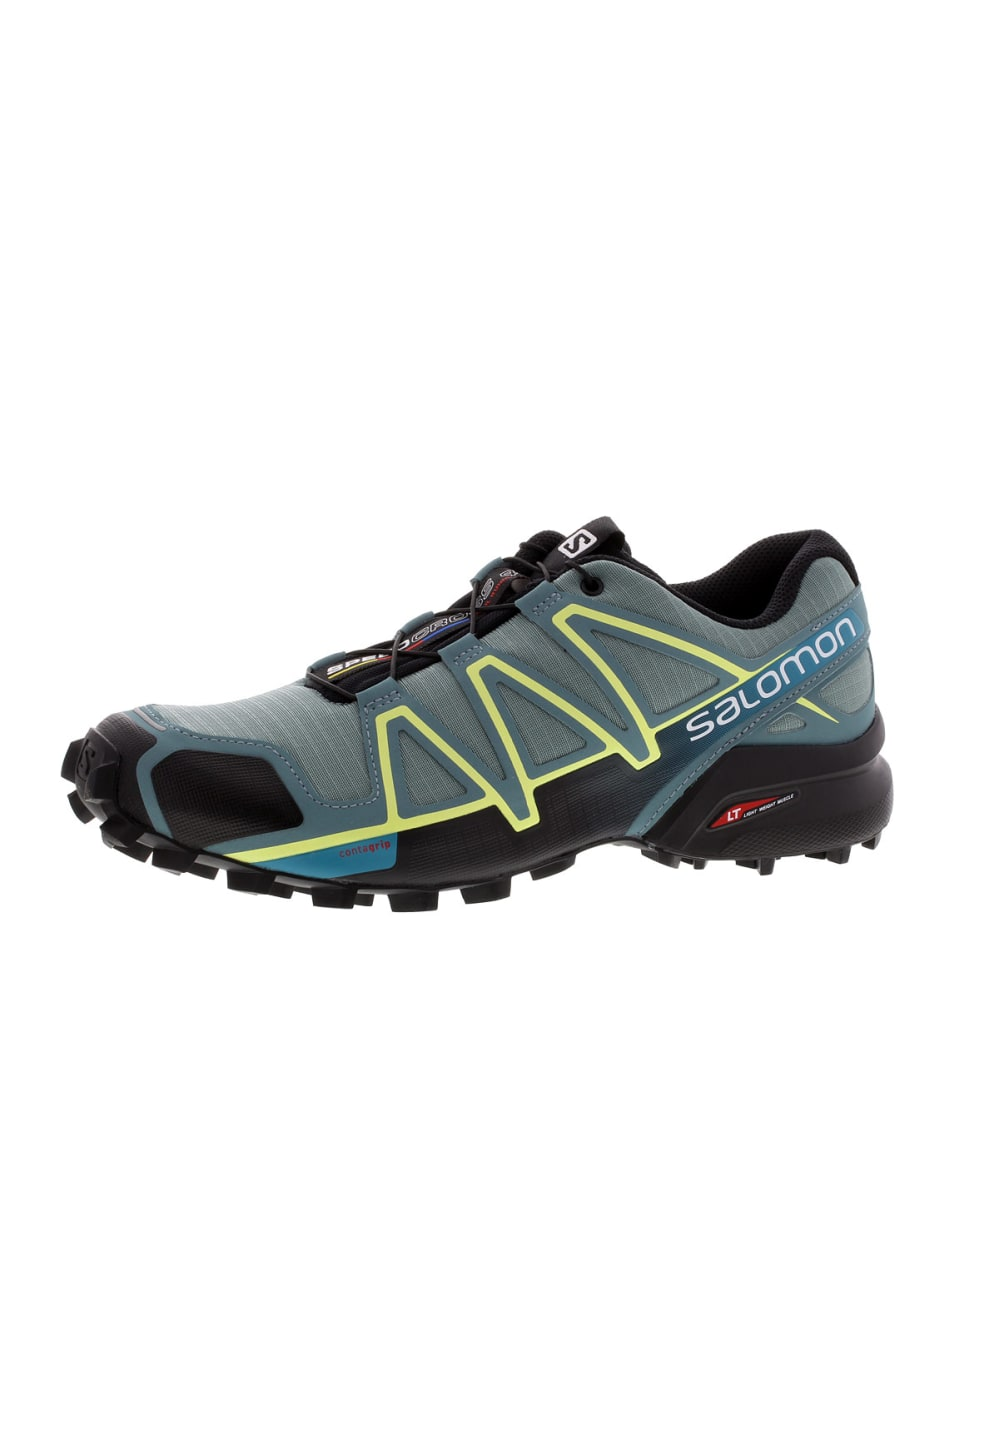 newest collection 40940 2d0ab Salomon Speedcross 4 - Running shoes for Women - Grey